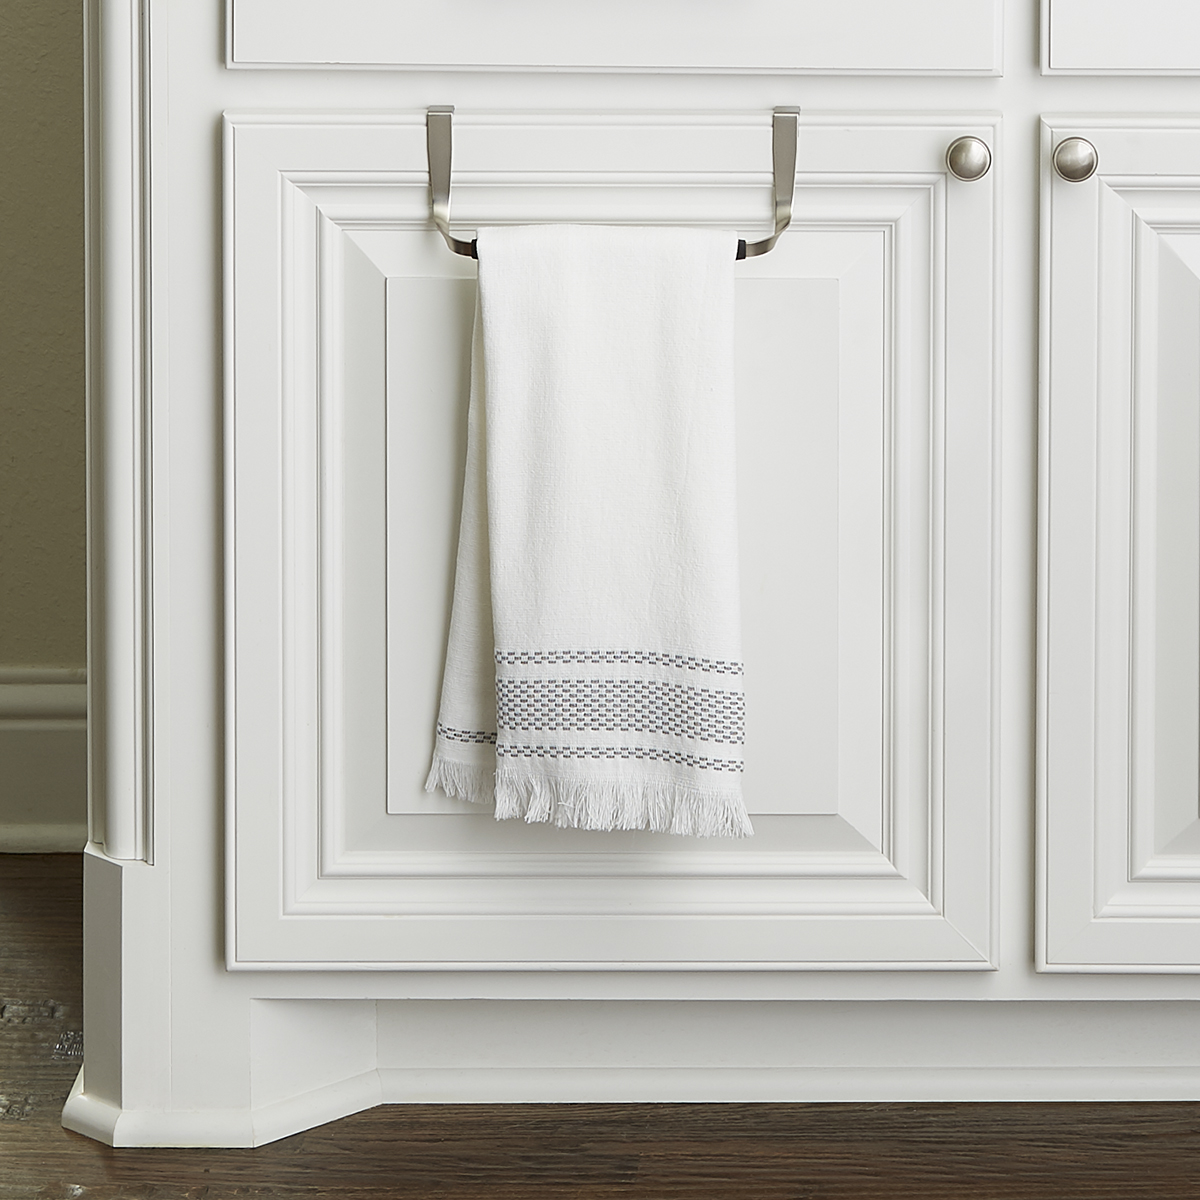 Delicieux Schnook Overcabinet Towel Bar By Umbra ...